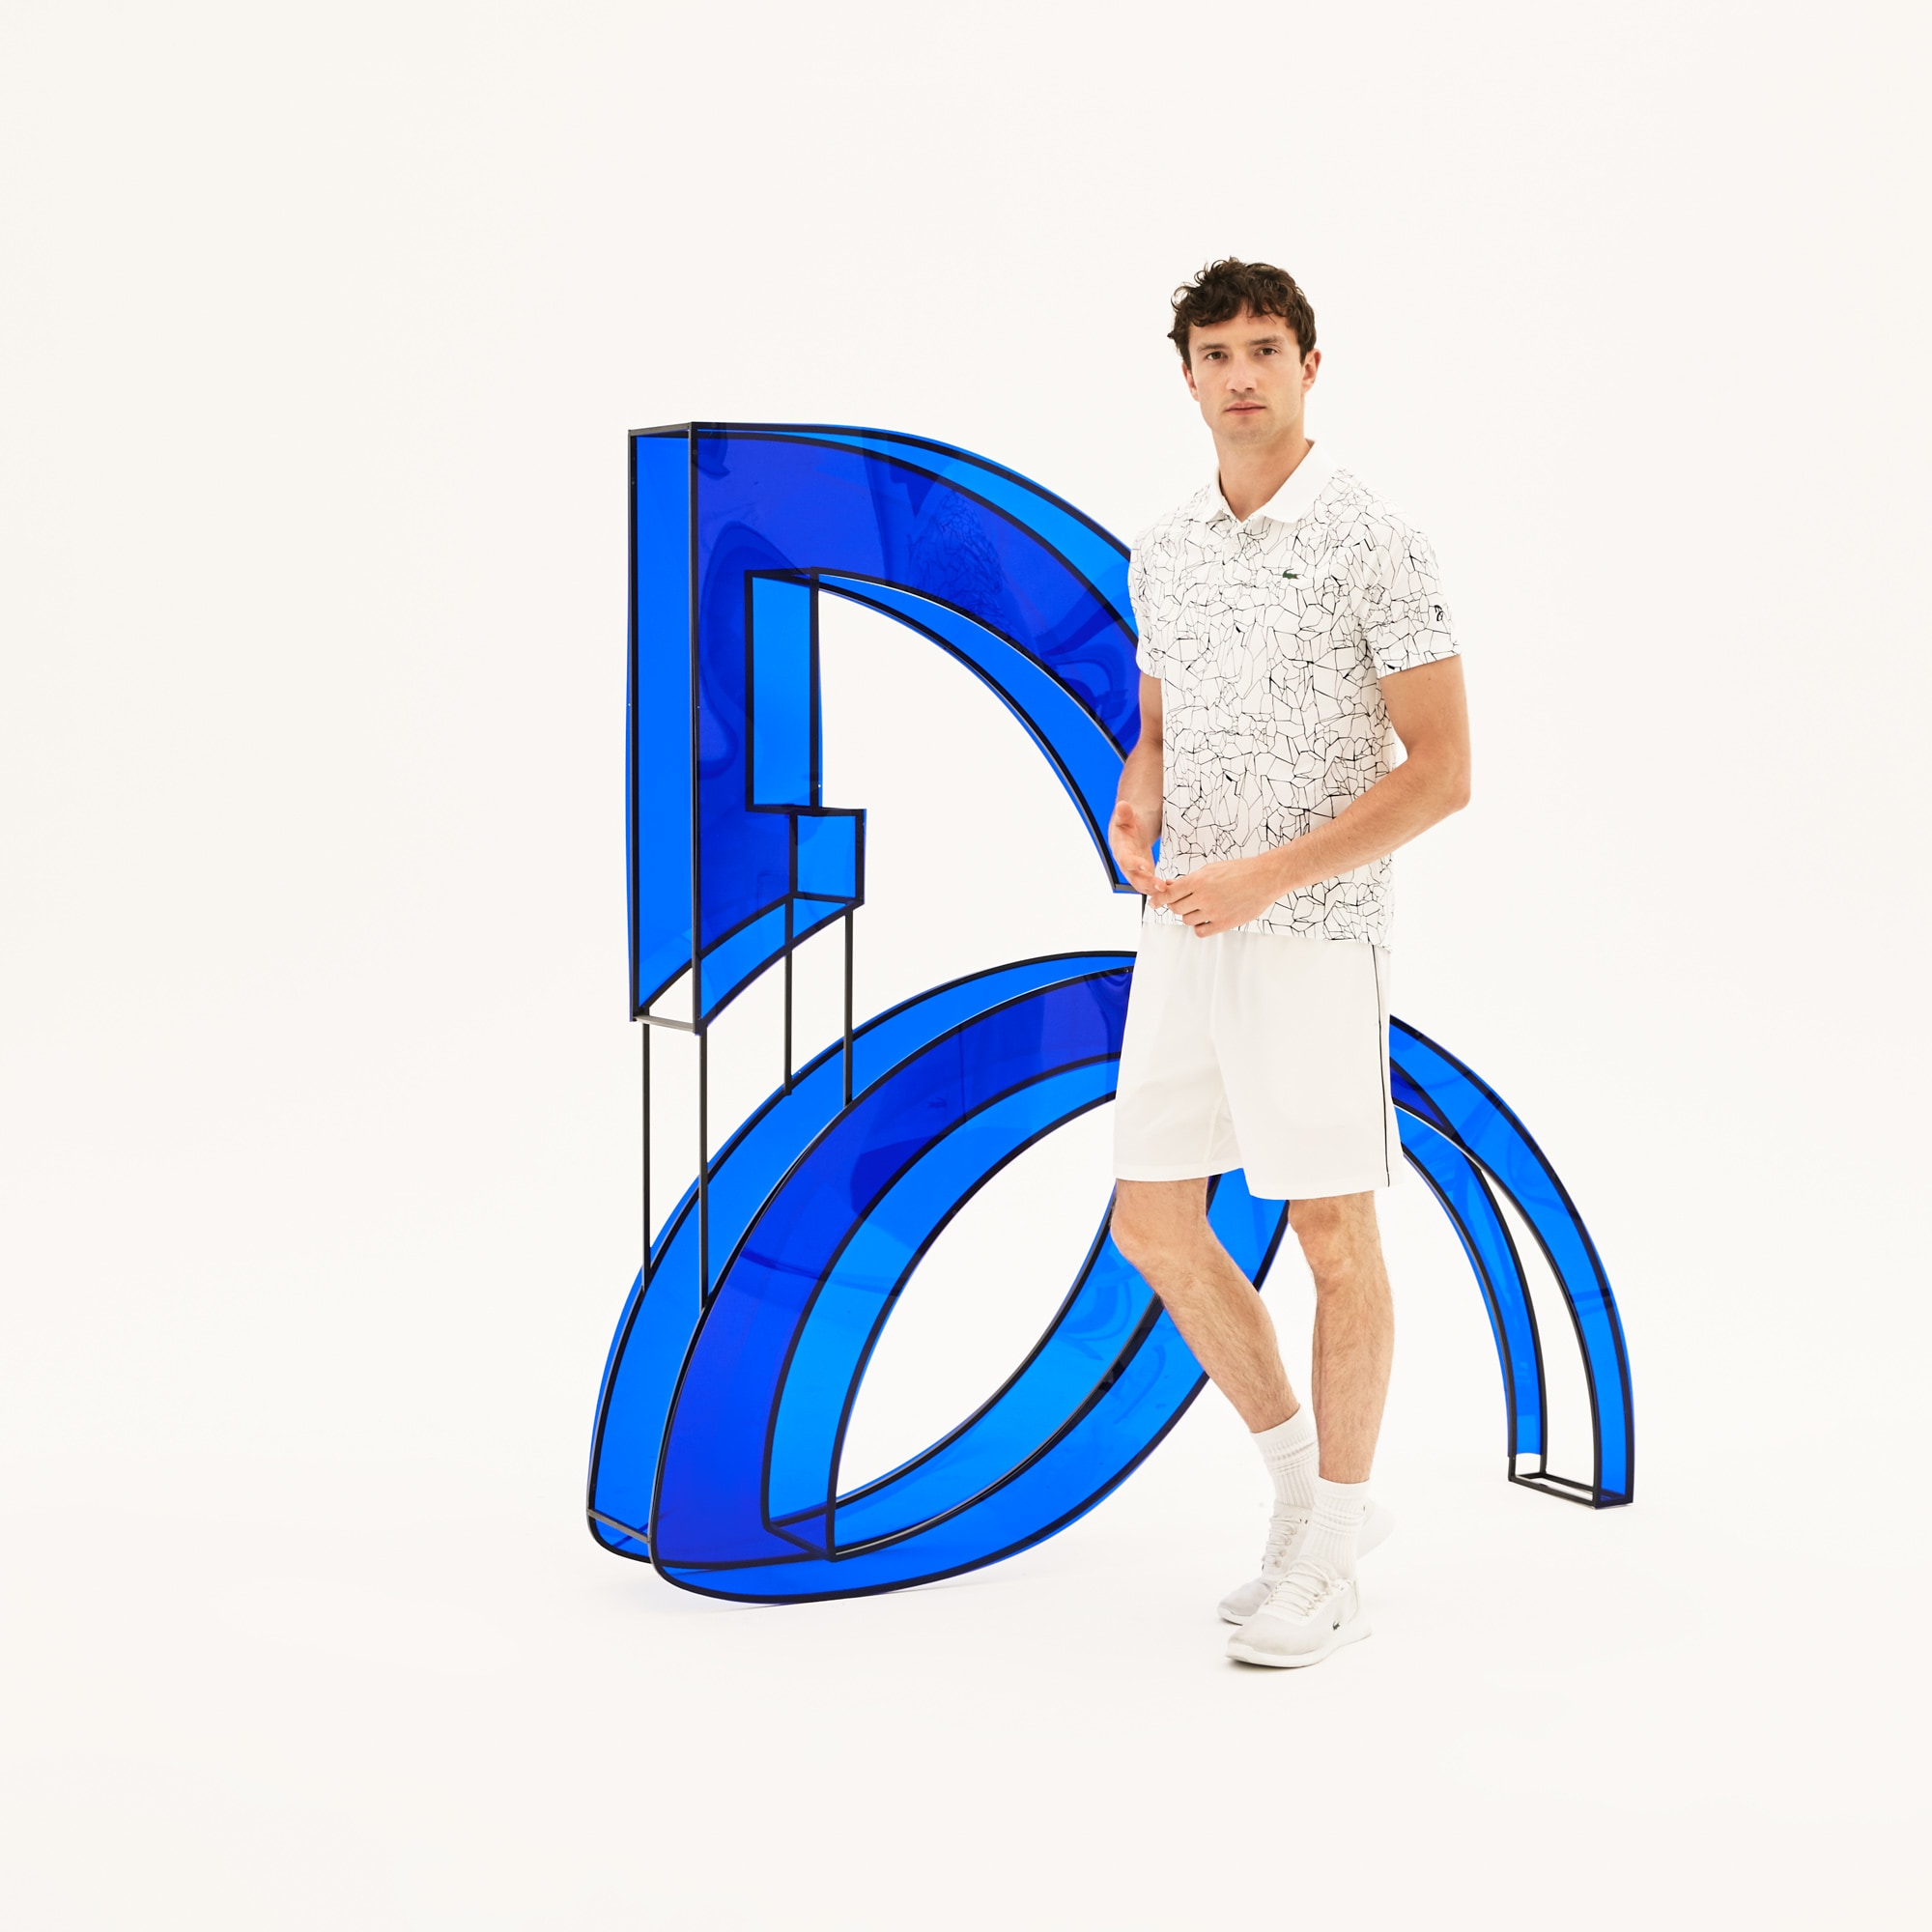 Polo De Hombre Lacoste SPORT Novak Djokovic-On Court Collection En Tejido De Punto Técnico Estampado